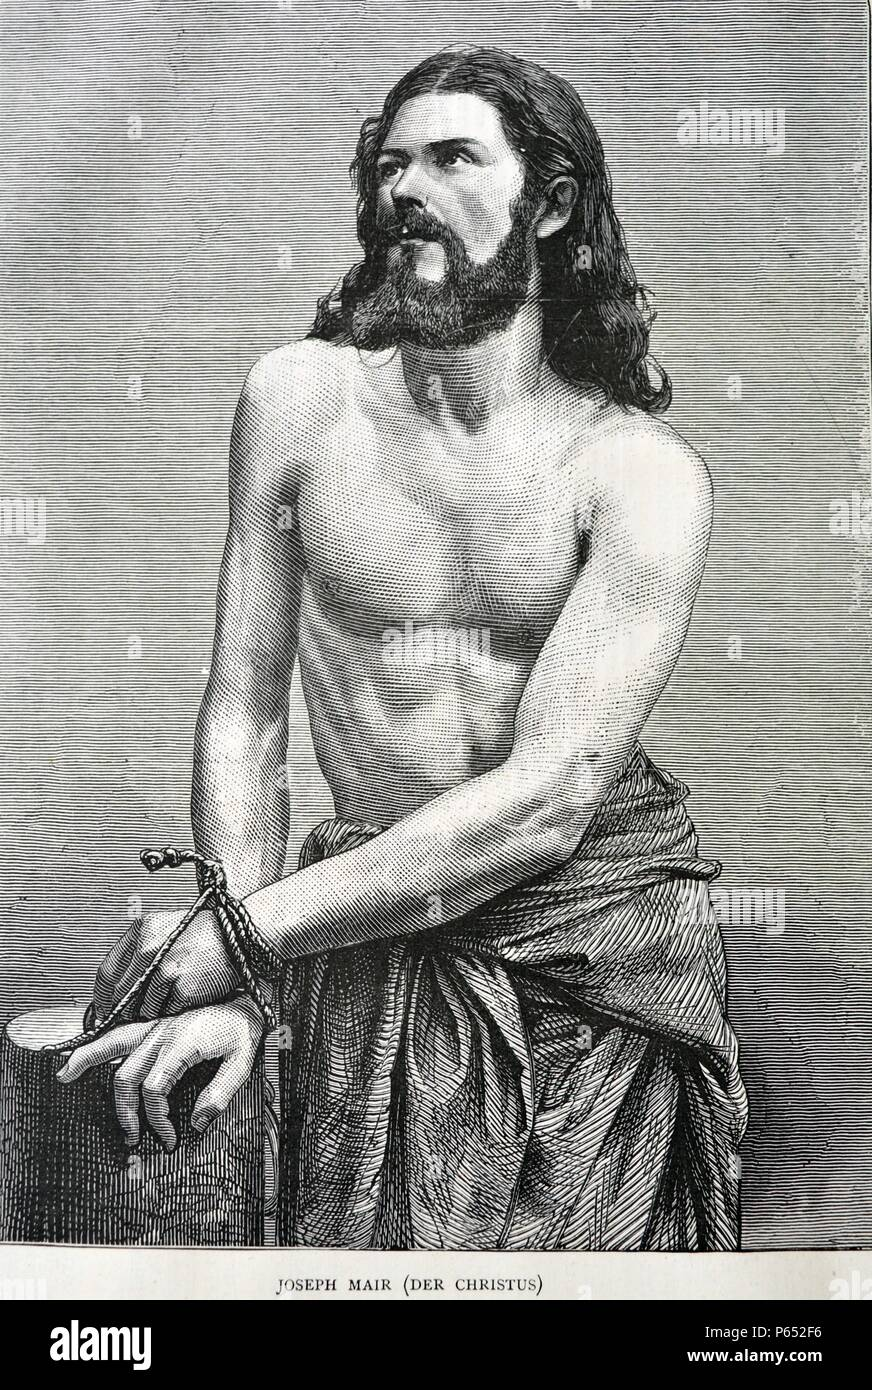 Joseph Mair as Jesus Christ for the Oberammergau Passion Play. A Passion Play is a dramatic presentation depicting the Passion of Jesus Christ: his trial, suffering and death. Anti-Semitism was prominent in Passion plays. Dated 1870 - Stock Image